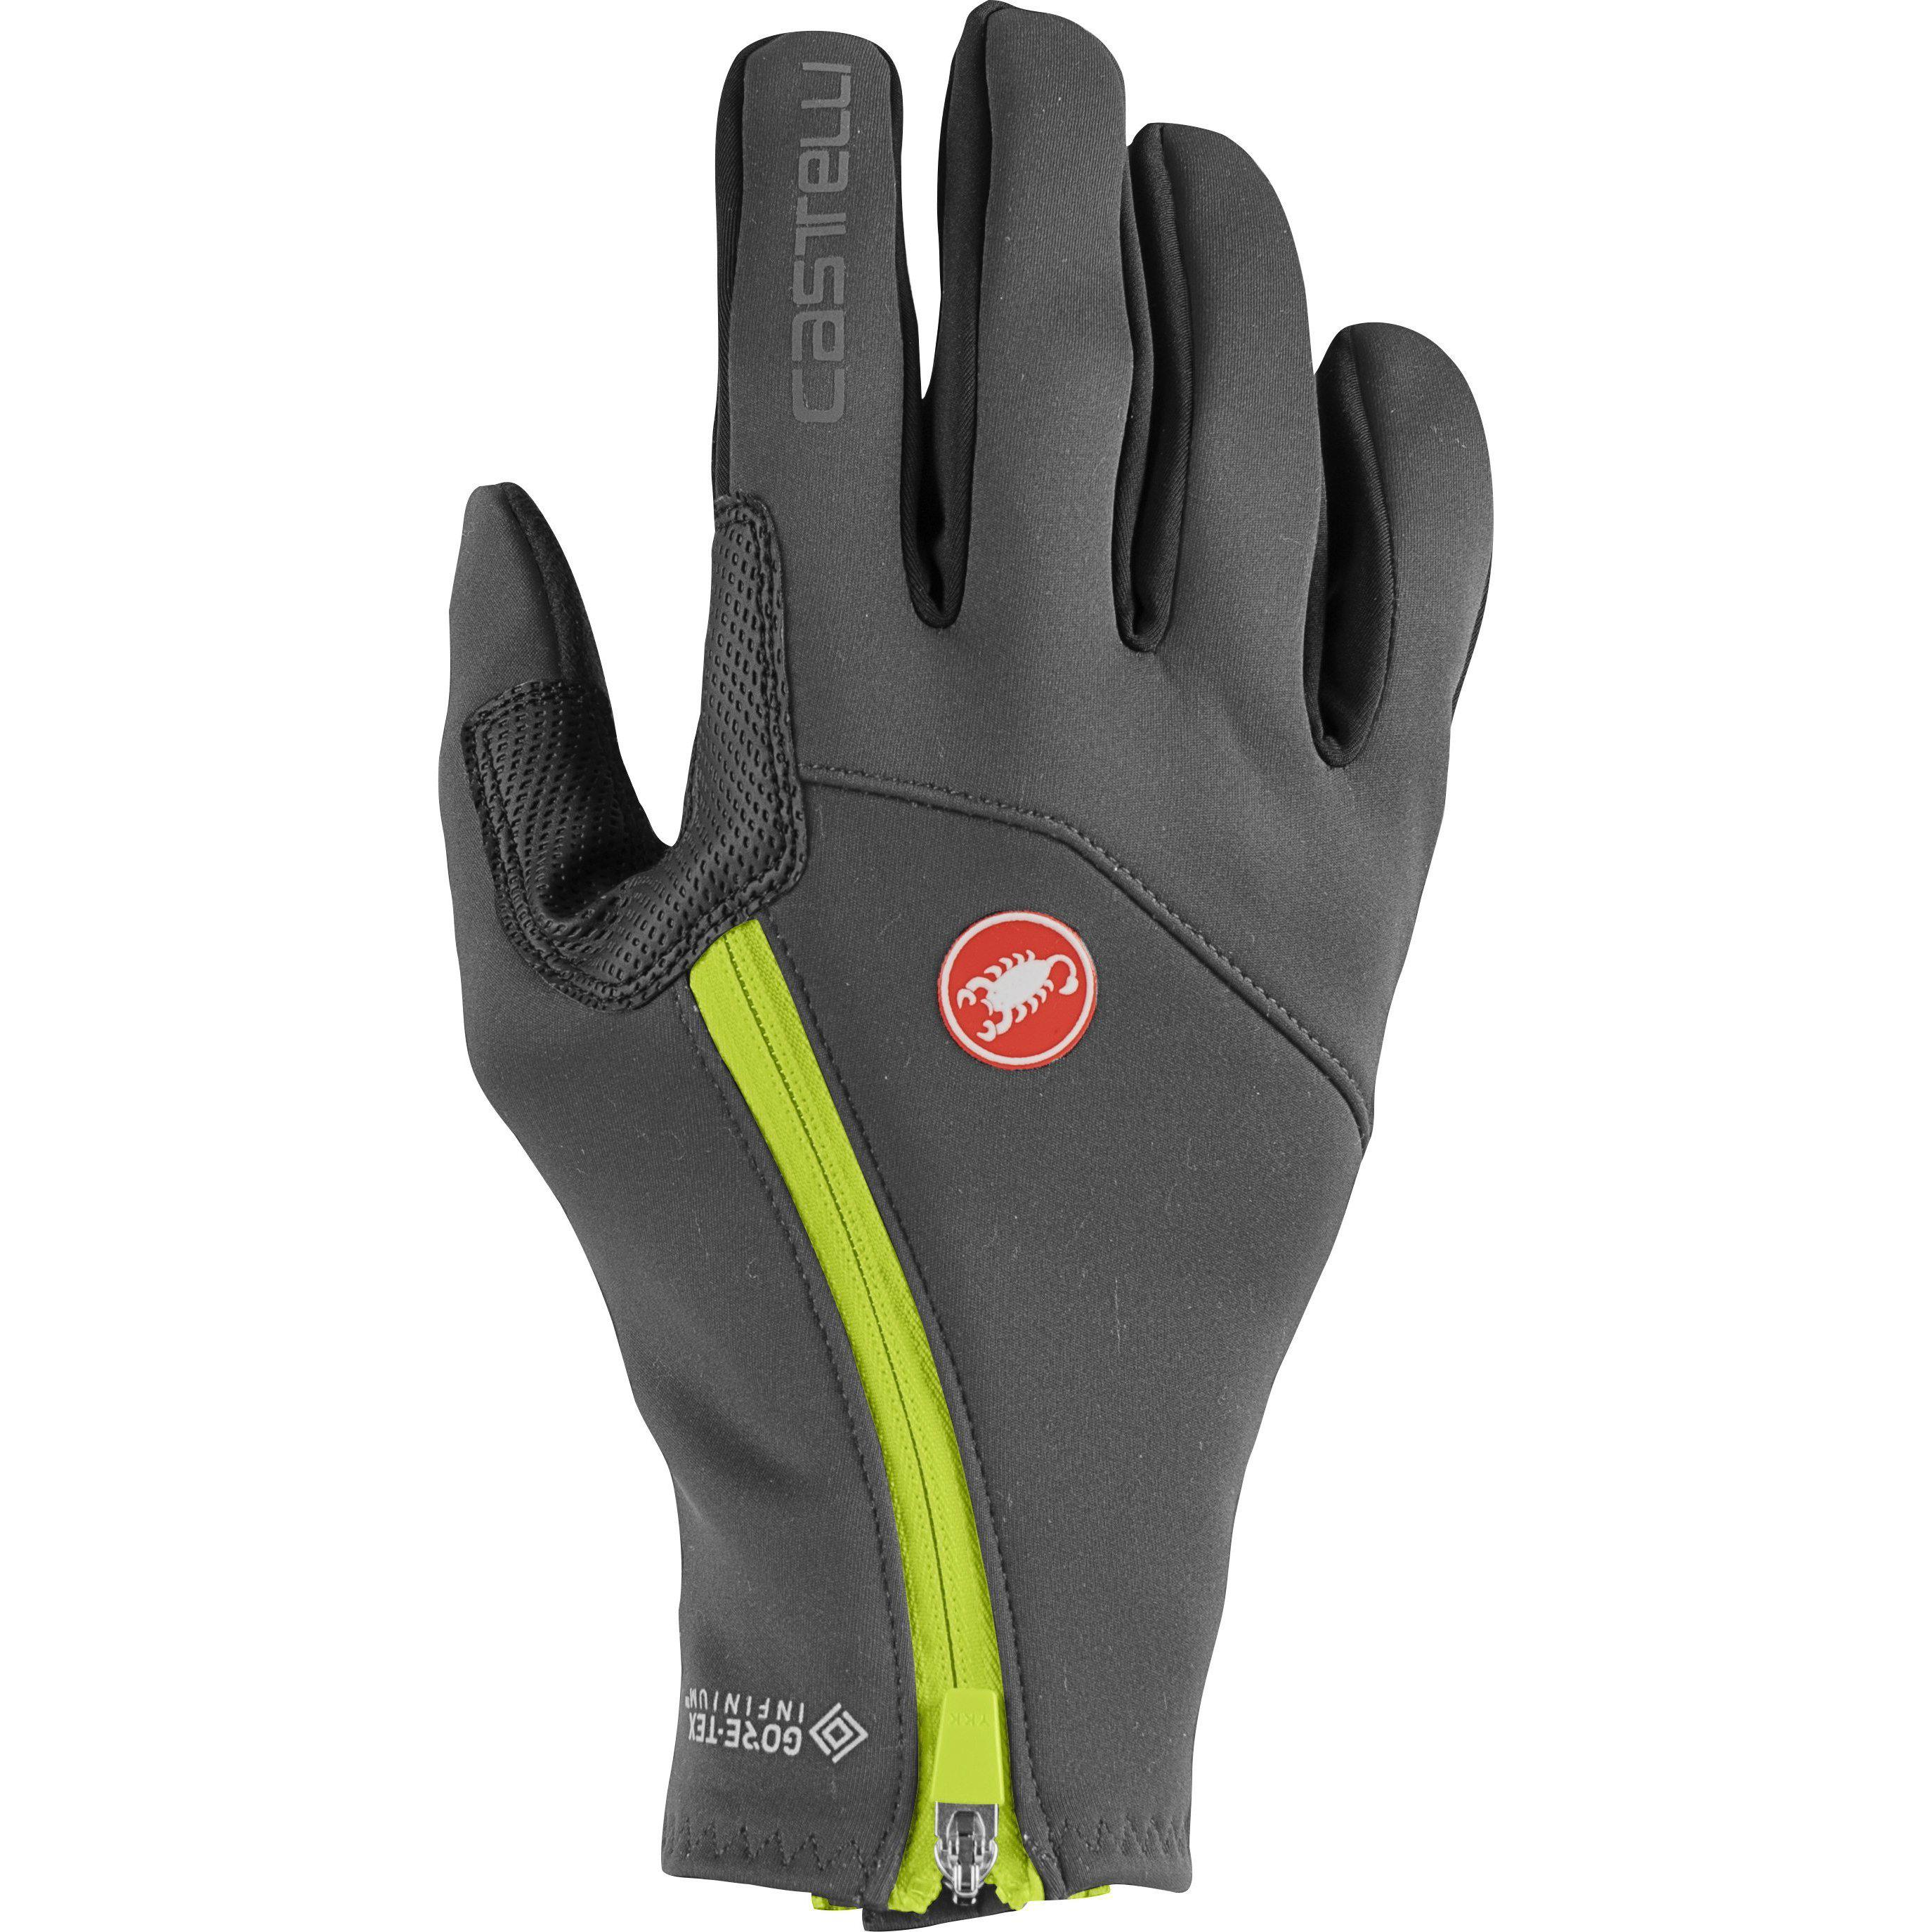 Castelli-Castelli Mortirolo Glove-Dark Gray-XS-CS205330301-saddleback-elite-performance-cycling